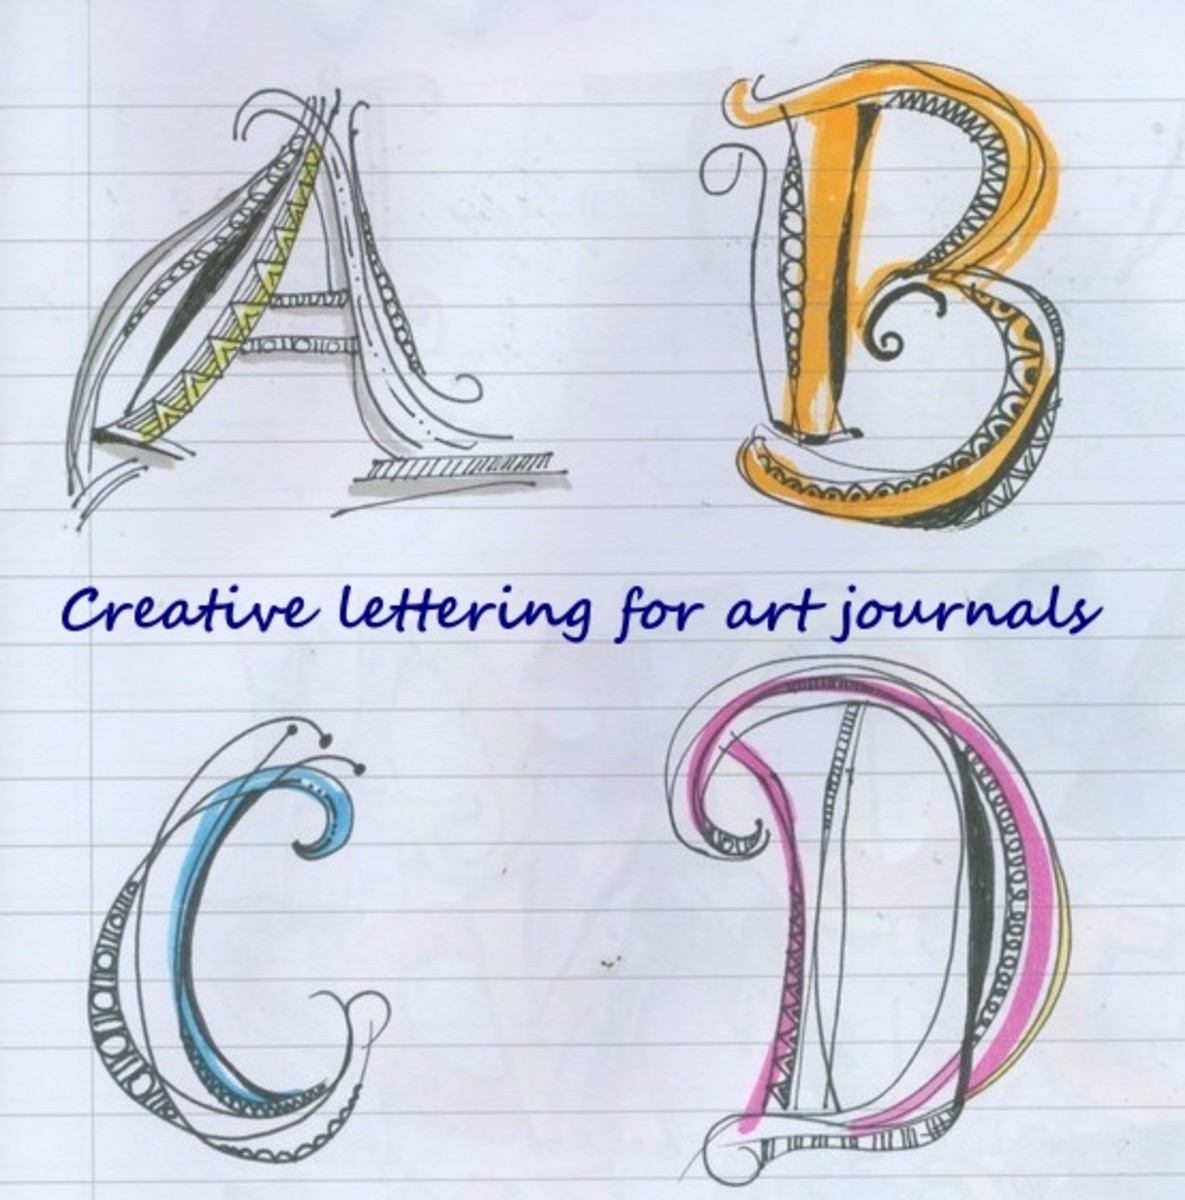 Creative Lettering For Art Journals